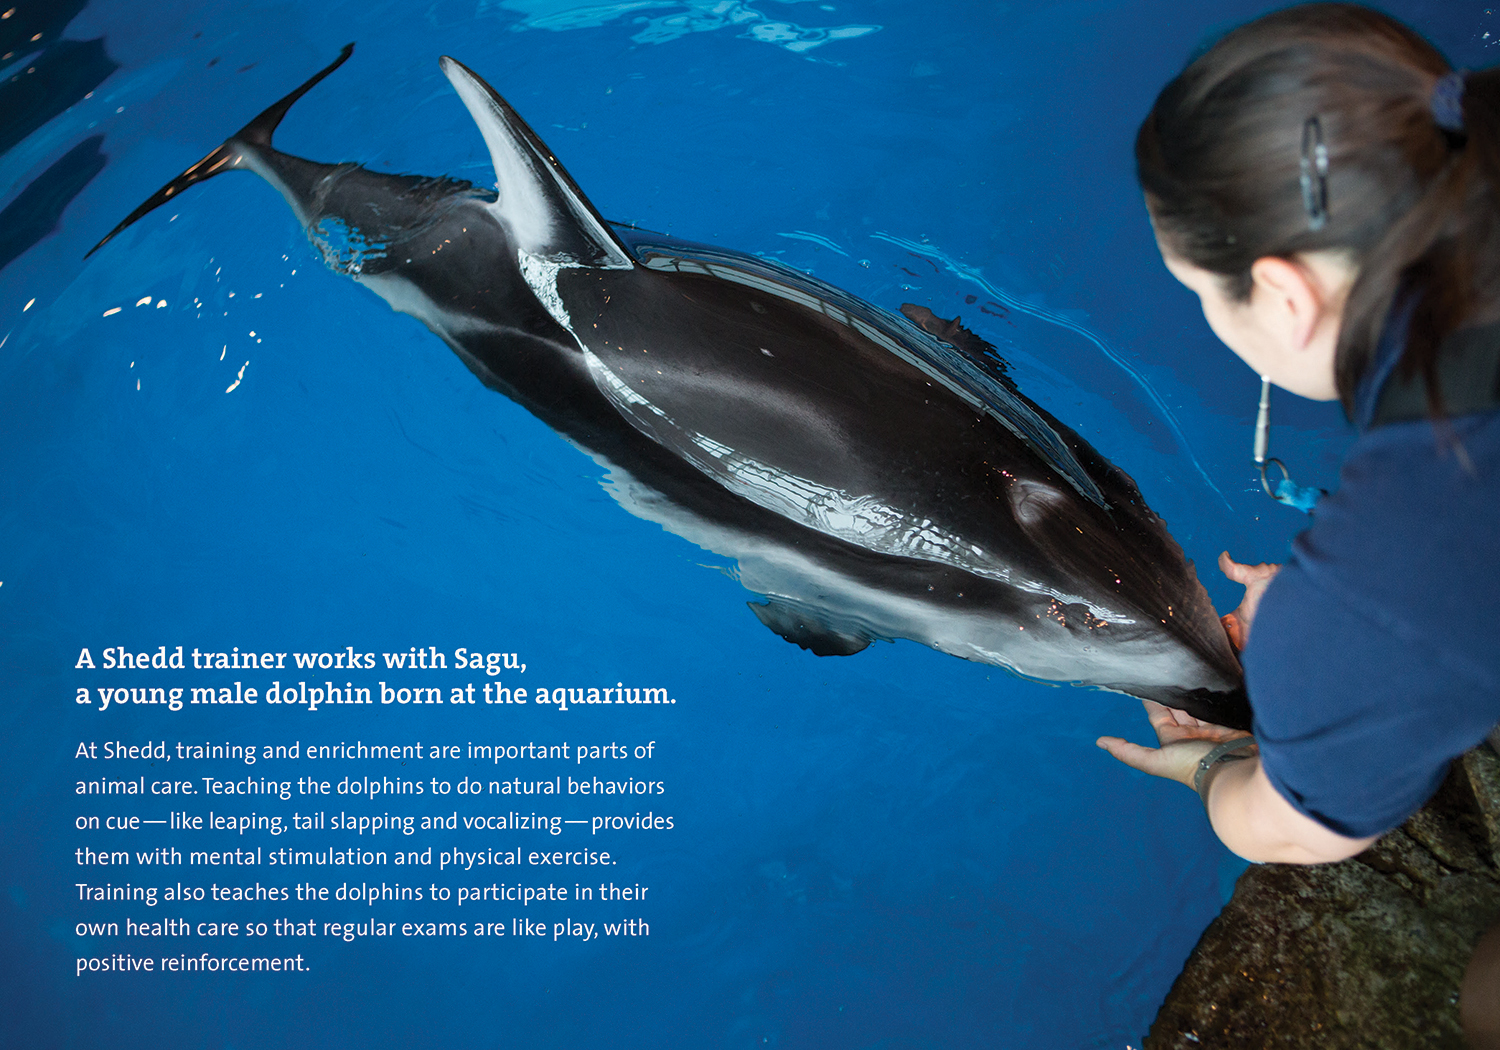 In this two-page spread a dolphin is shown resting its mouth on a trainer's hands. Descriptive copy in the bottom left corner reads, 'A Shedd trainer works with Sagu, a young male dolphin born at the Aquarium.